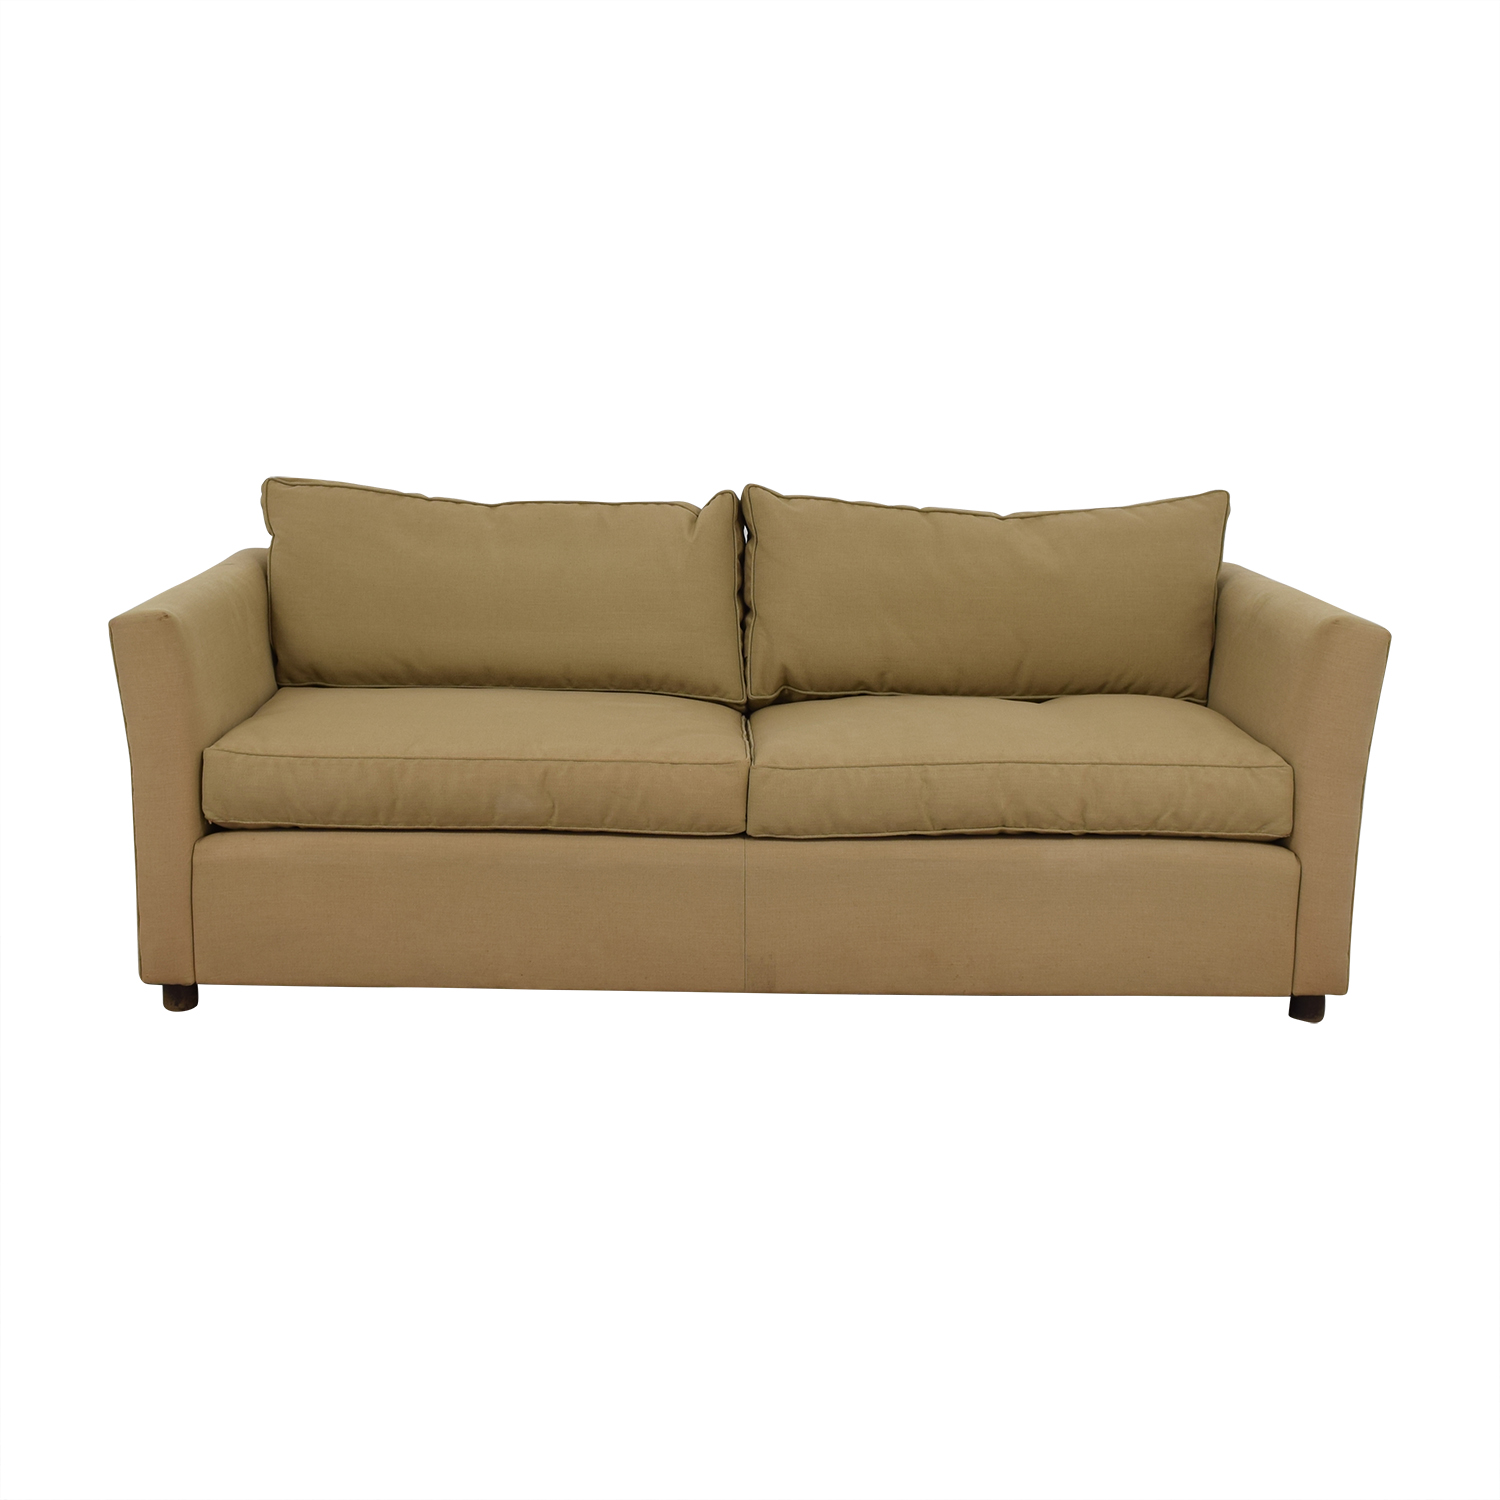 buy Beige Two-Cushion Sofa